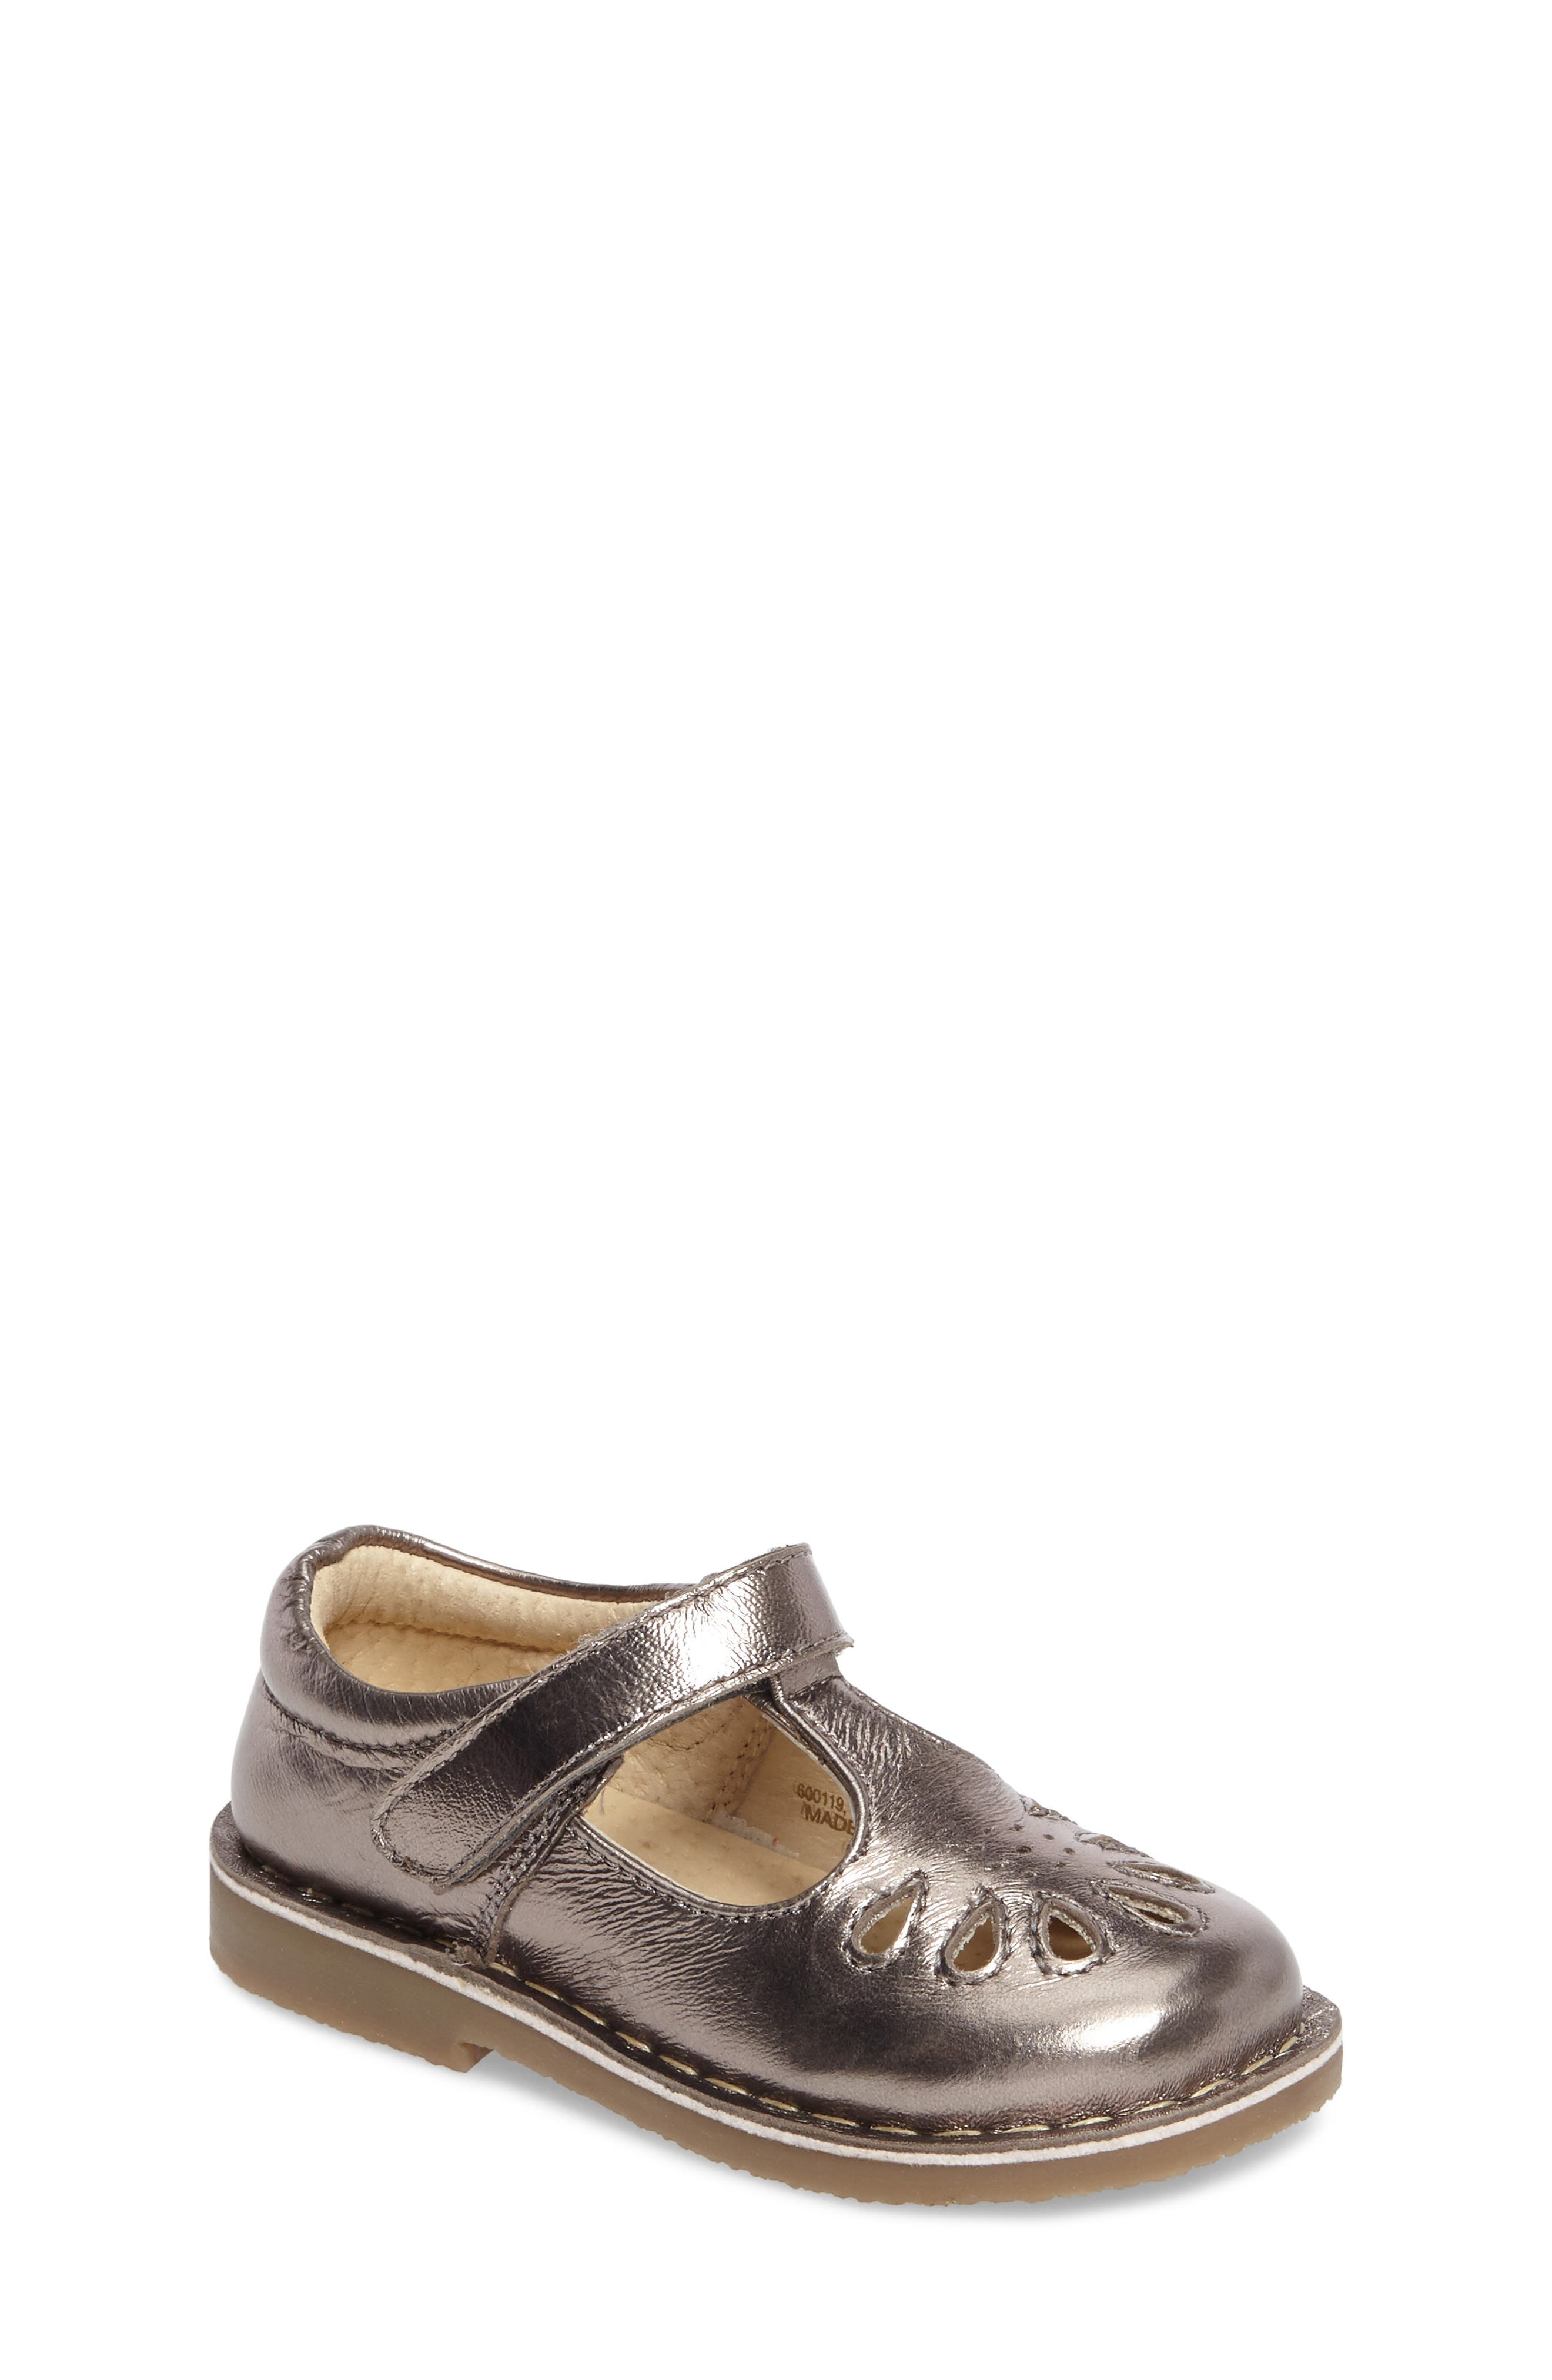 Mini Boden Perforated T-Strap Mary Jane (Toddler, Little Kid & Big Kid)